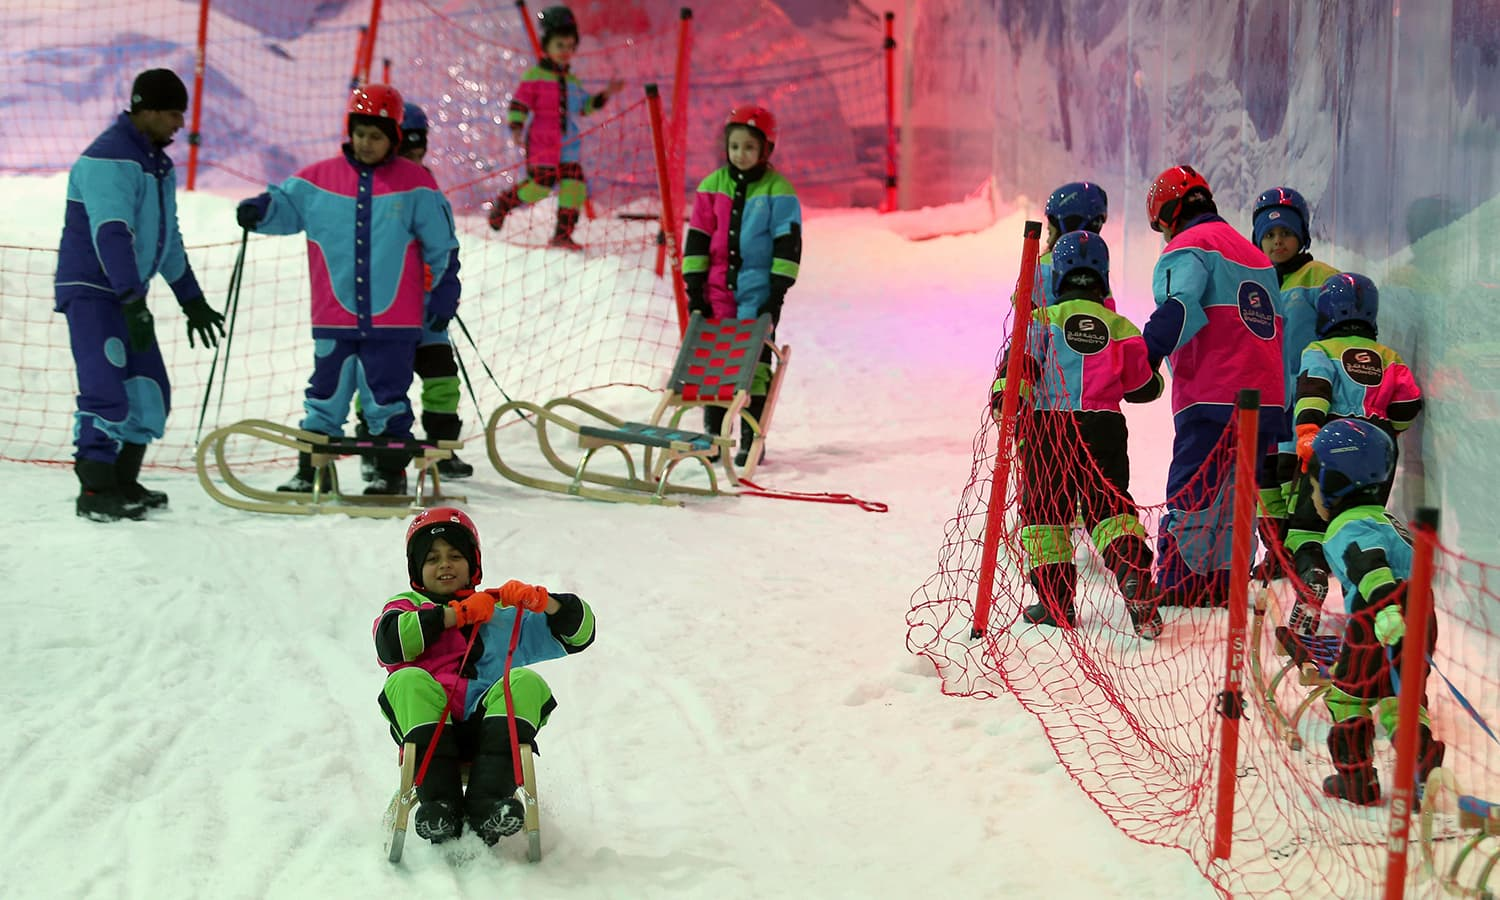 """This file photo taken on July 20, 2016 shows Saudi children playing on sledges at the indoor snow theme park """"Snow City"""" in the Al-Othaim Mall Rabwa in the capital Riyadh. ─ AFP"""